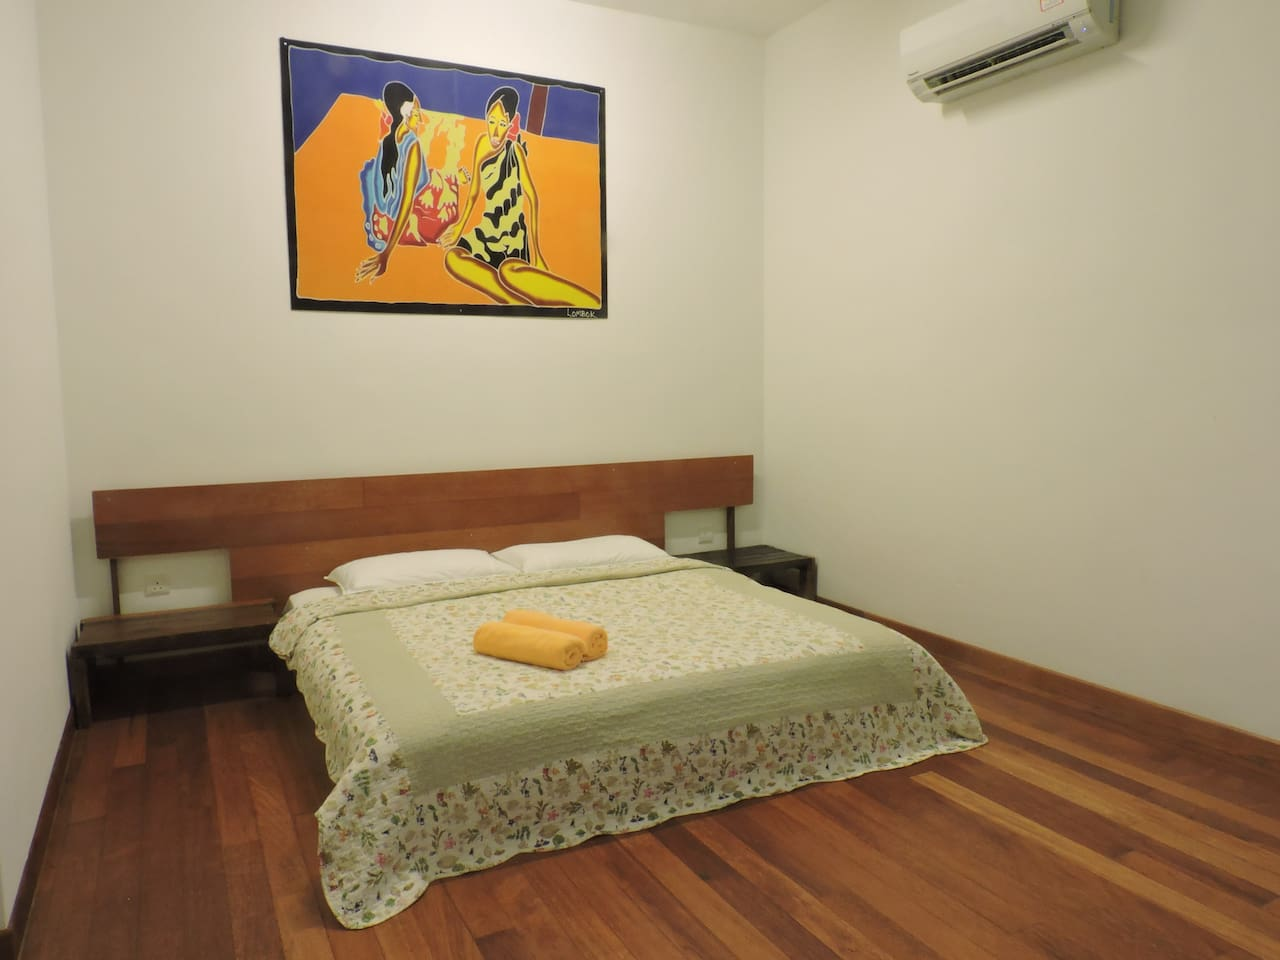 New Fully Furnished Private Bedroom with Attached Bathroom